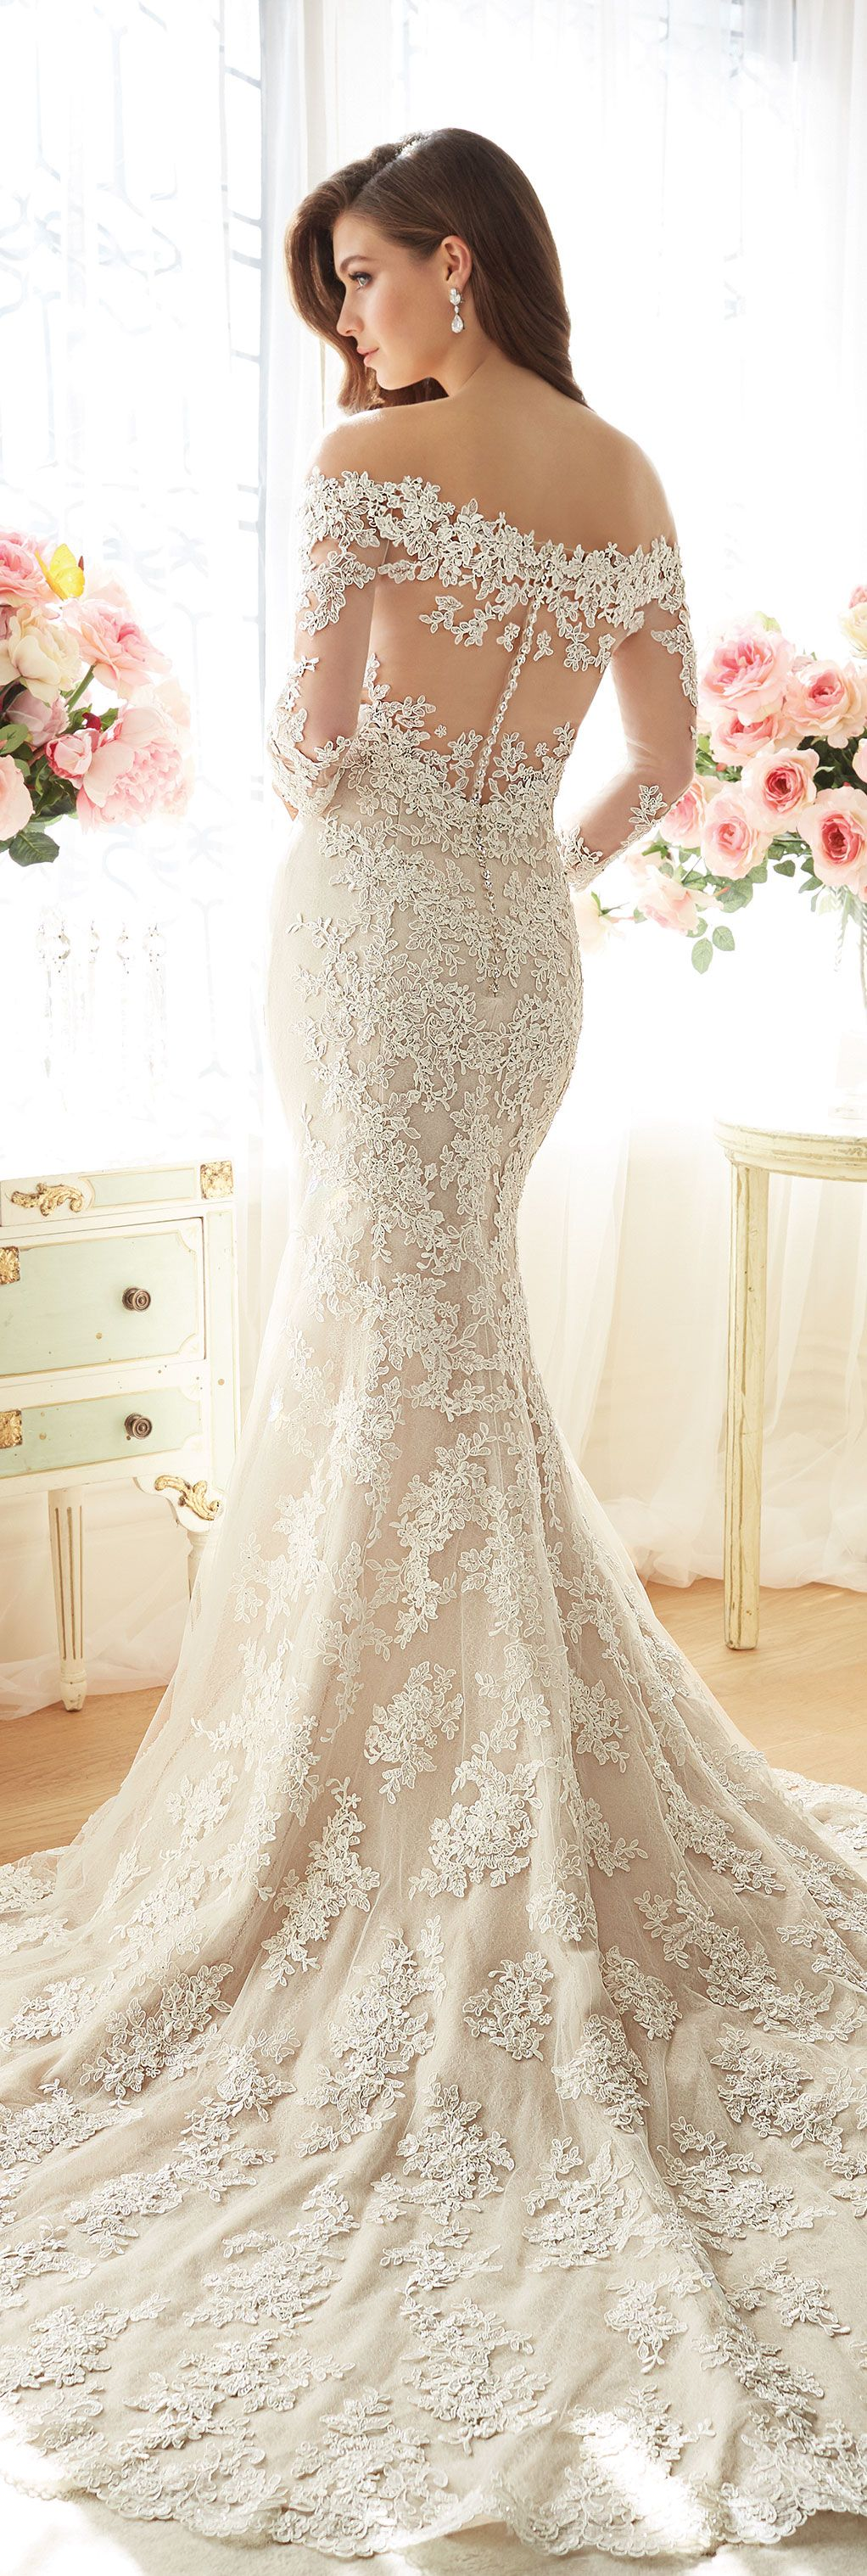 Off-The-Shoulder Lace & Tulle Trumpet Gown - Sophia Tolli Y11632 ...